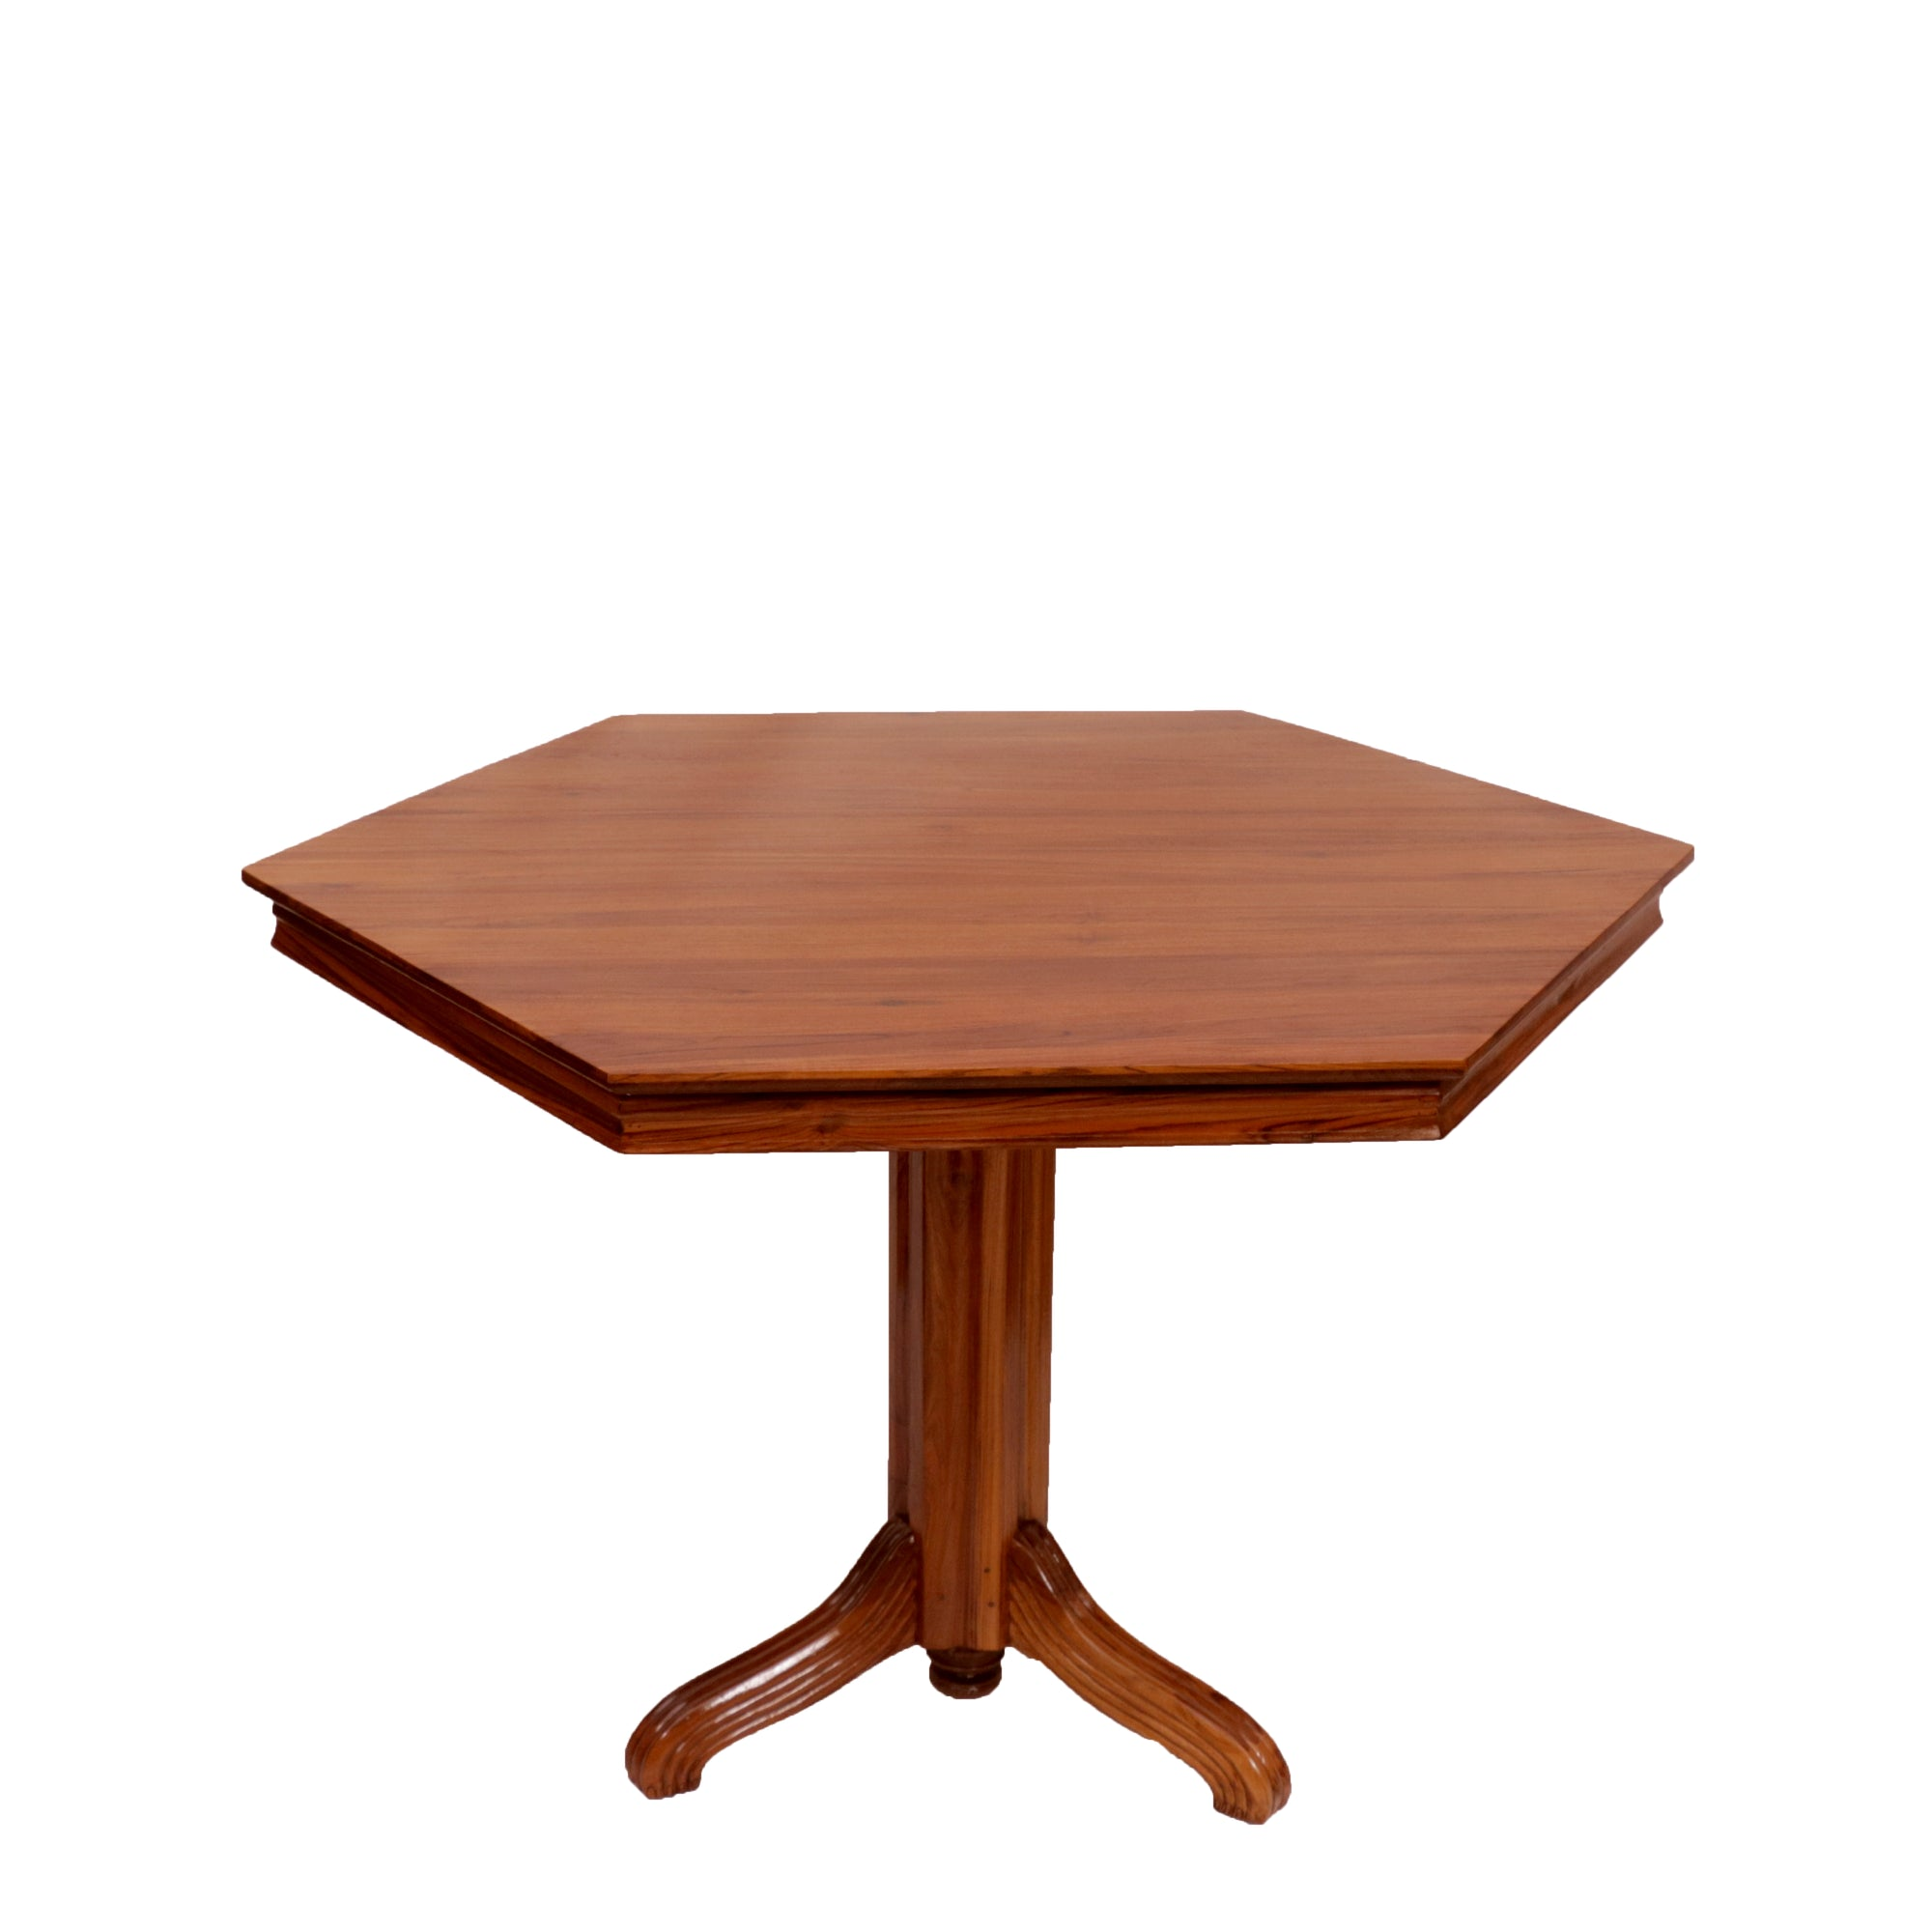 Hexagonal Teak Wood Dining Table